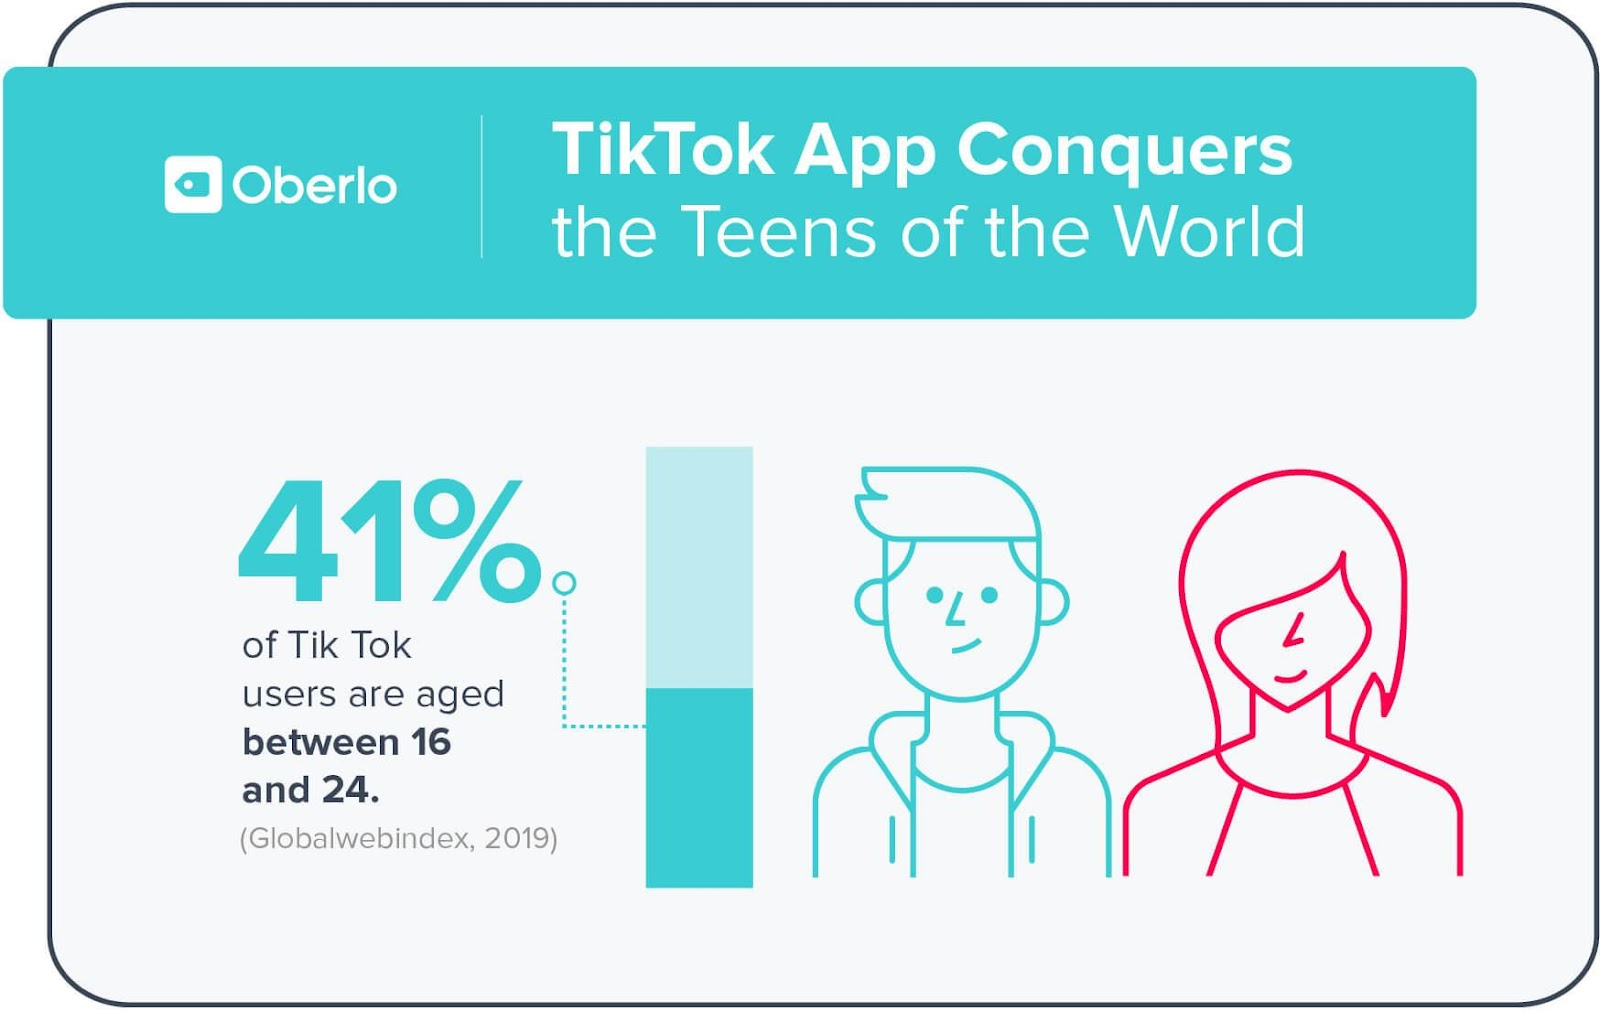 41% of TikTok users are aged between 16 and 24.